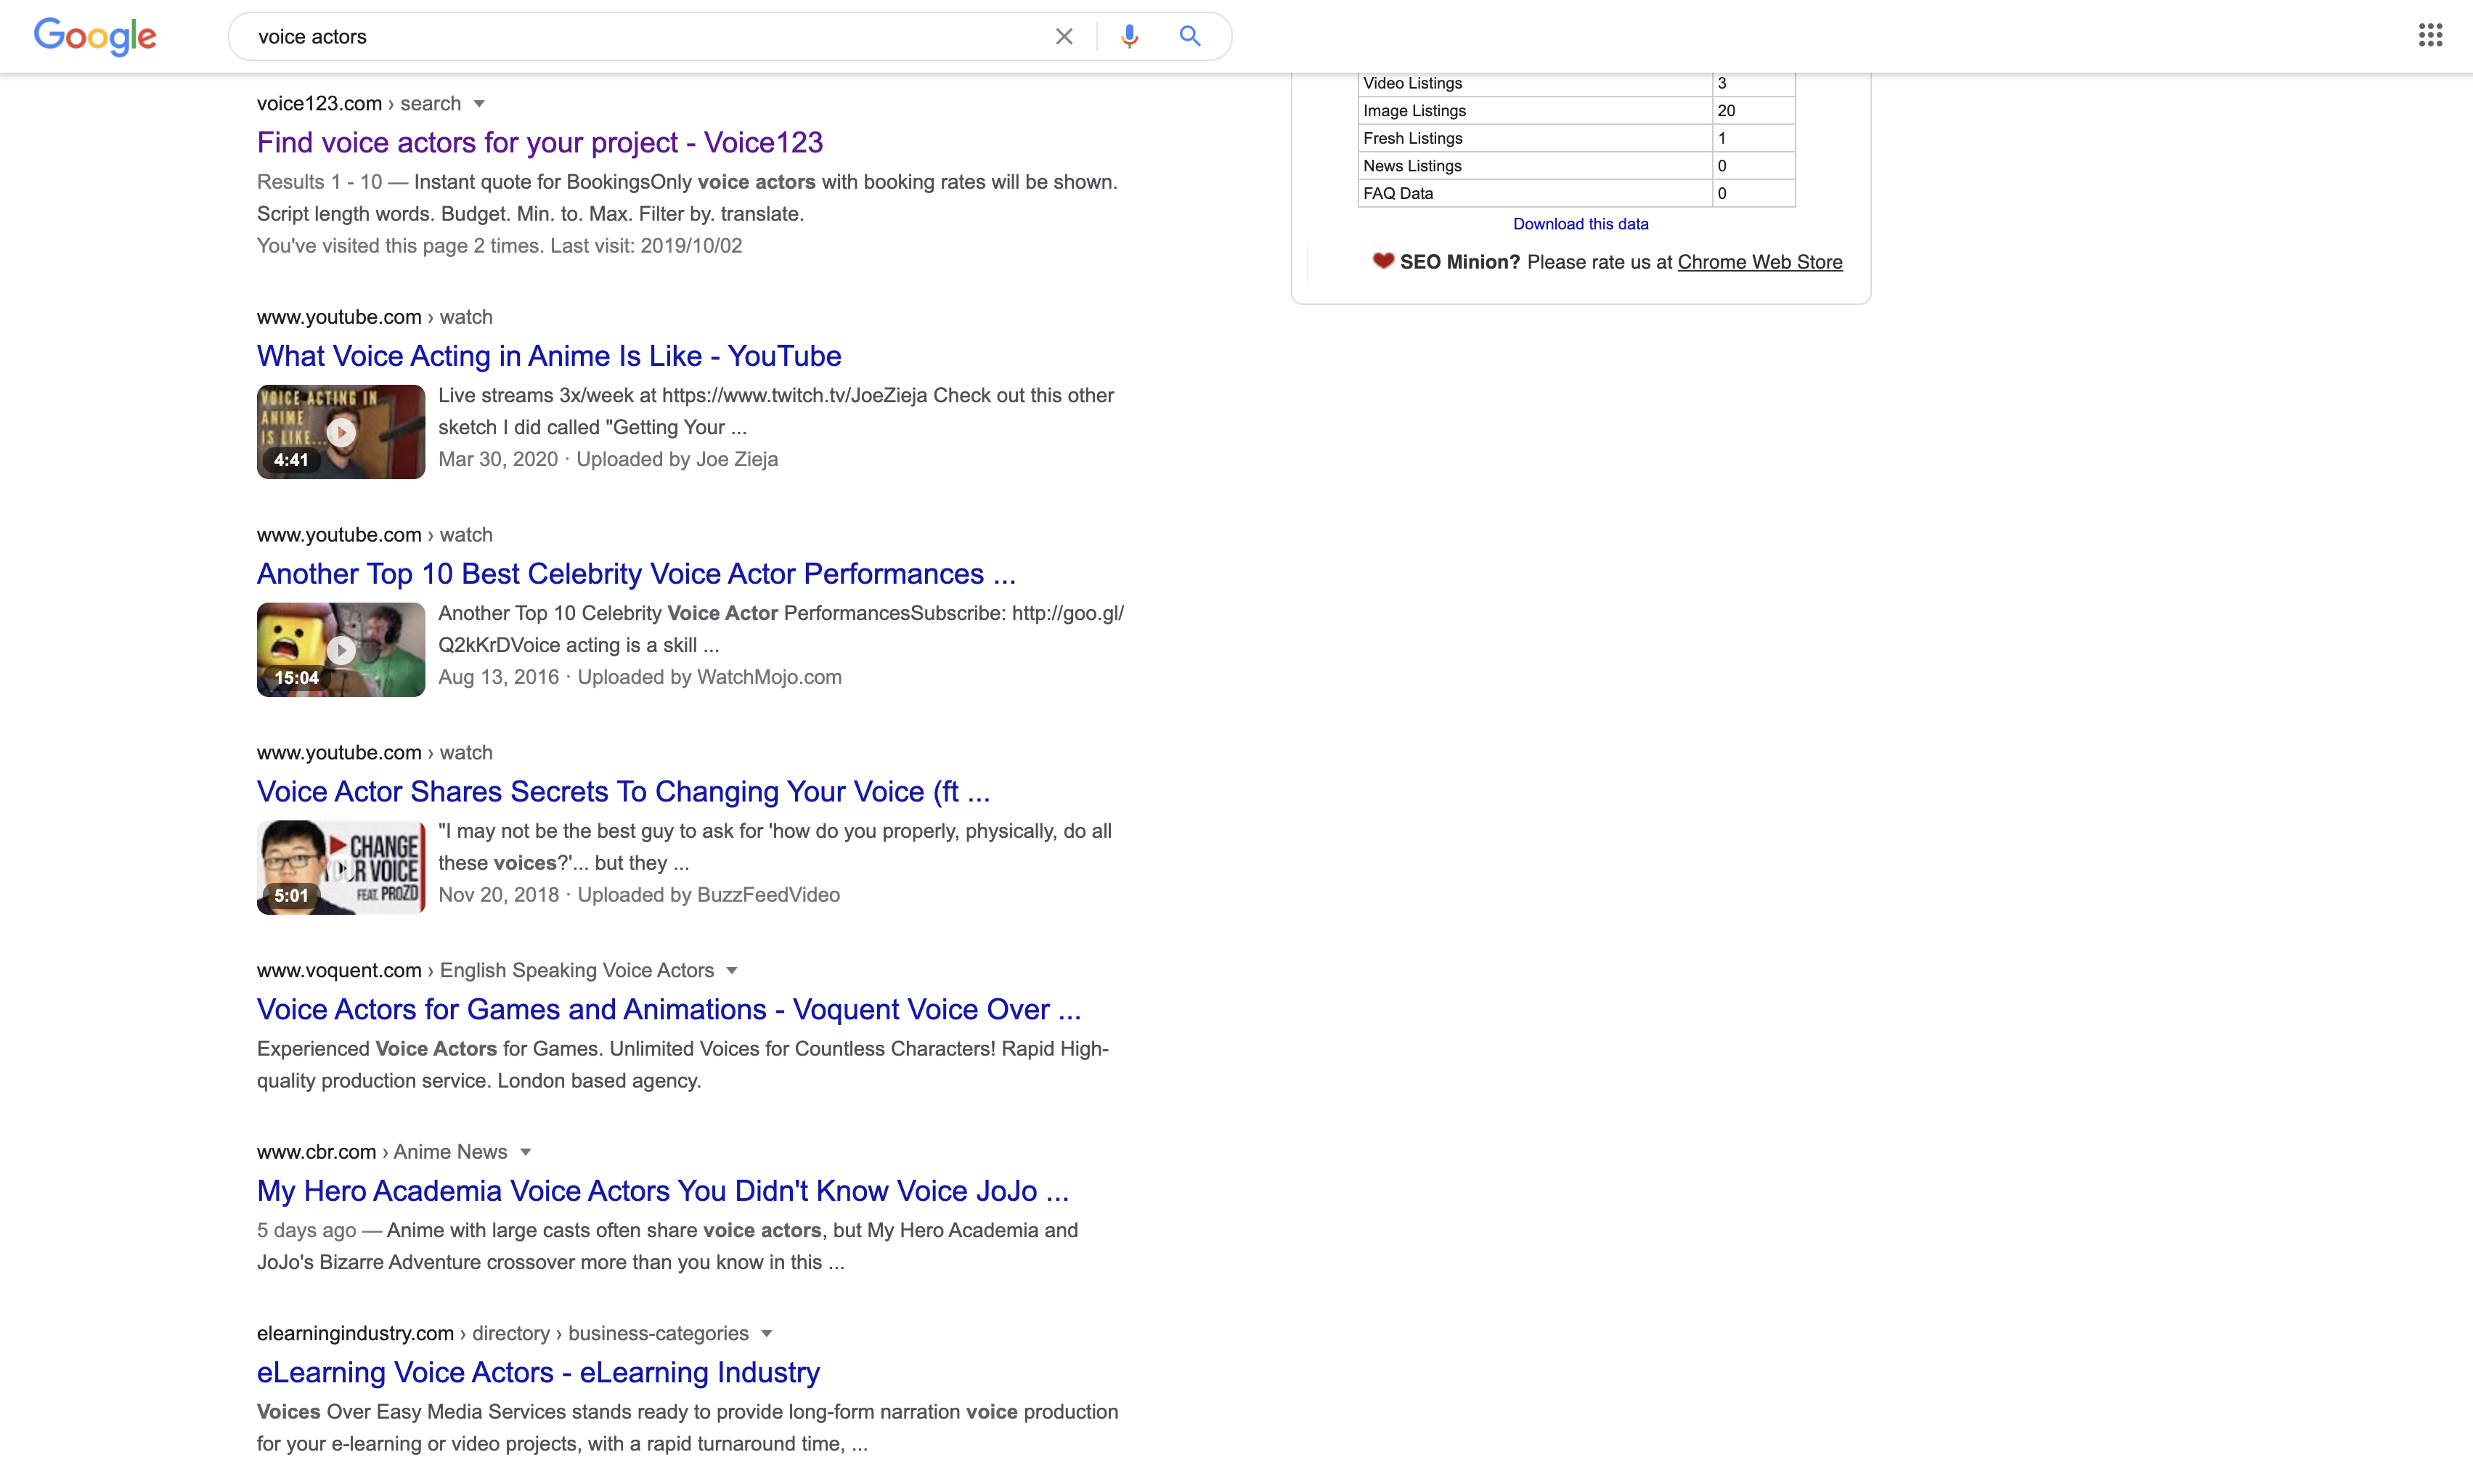 Choosing the best voice actor: image of Google search results